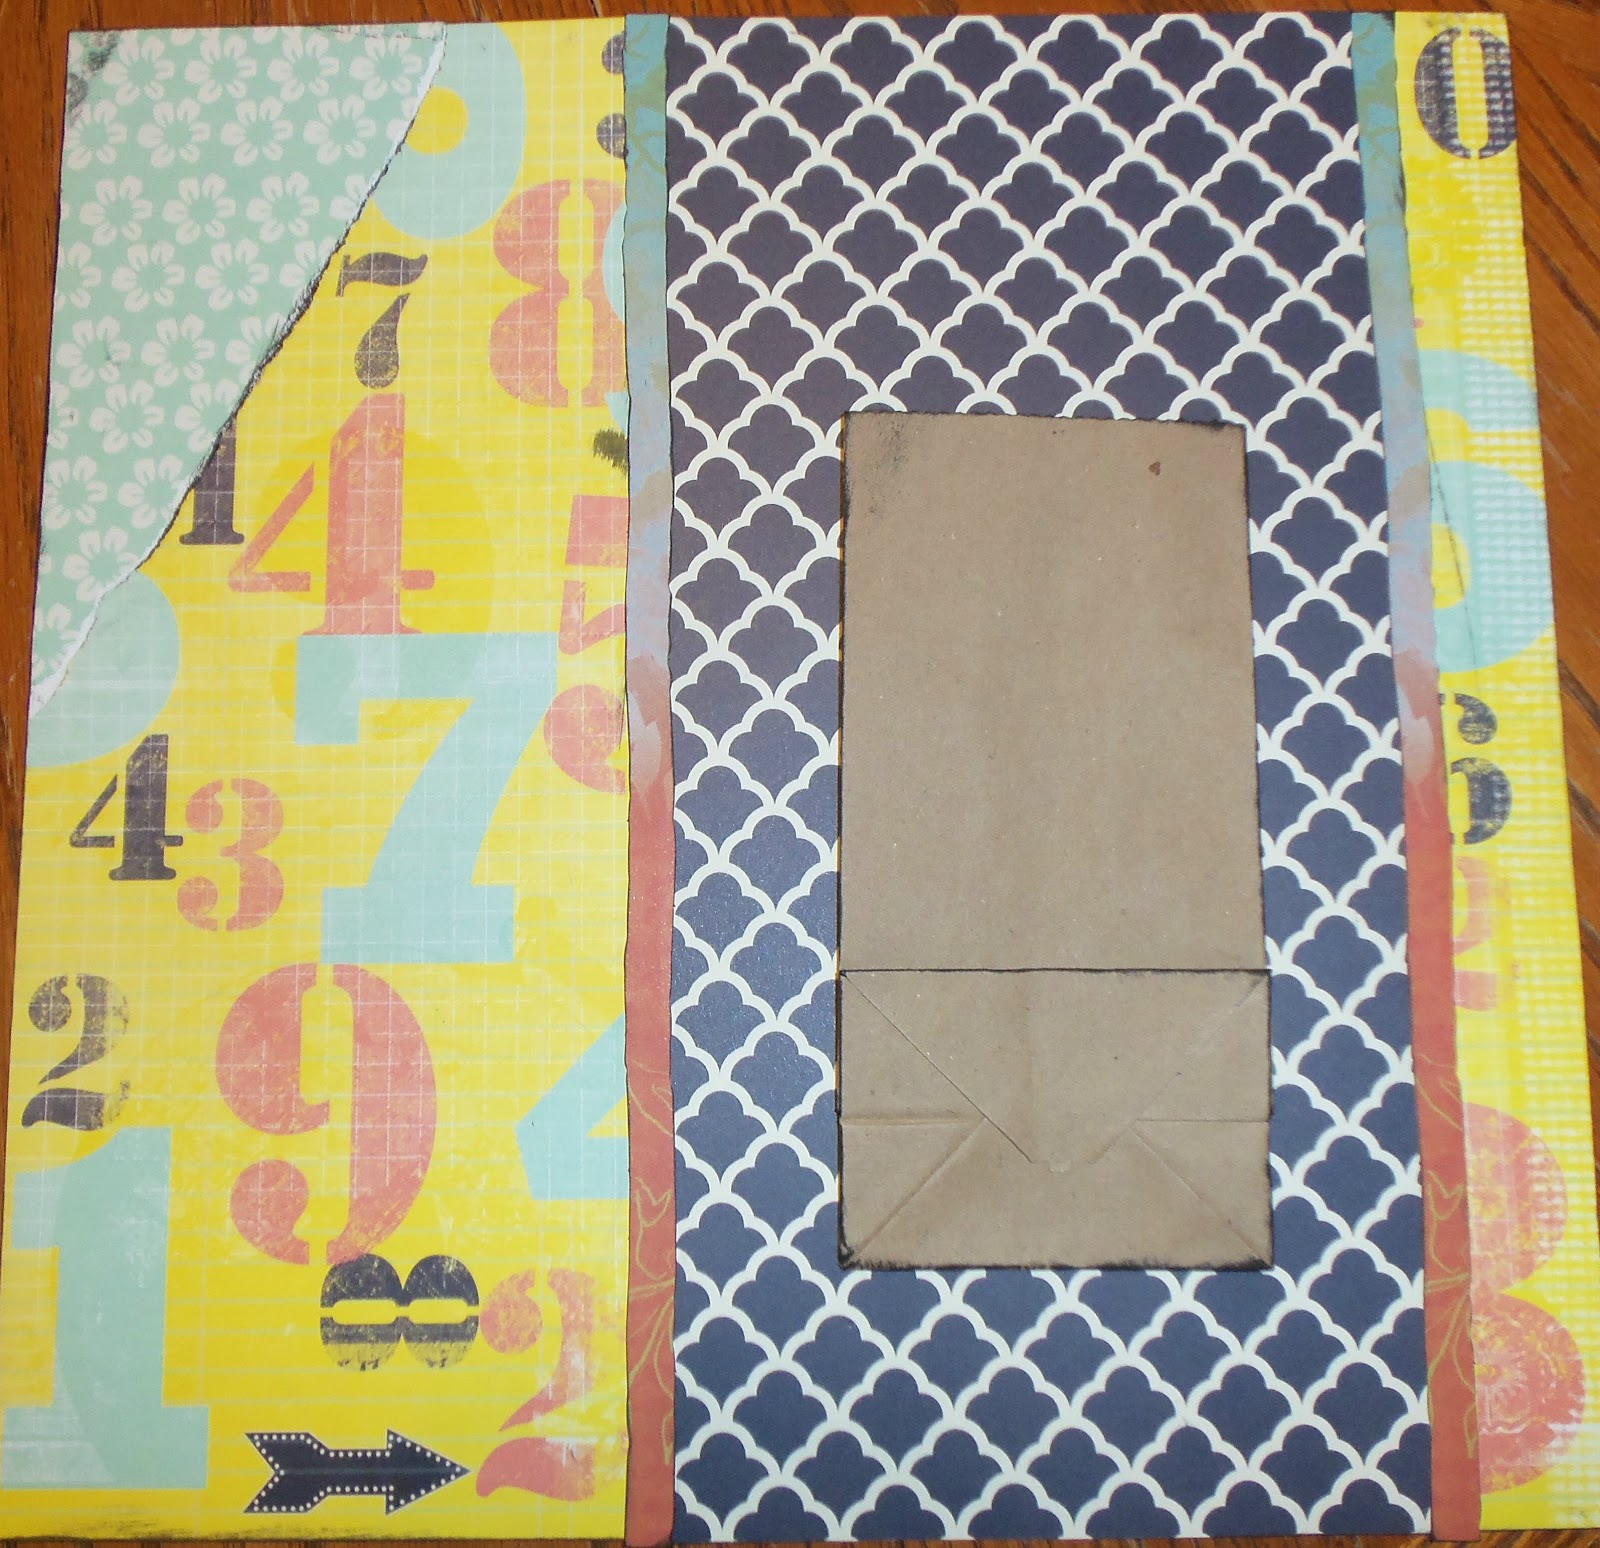 I was thinking about picking up scrapbooking. What do I need to do to start?